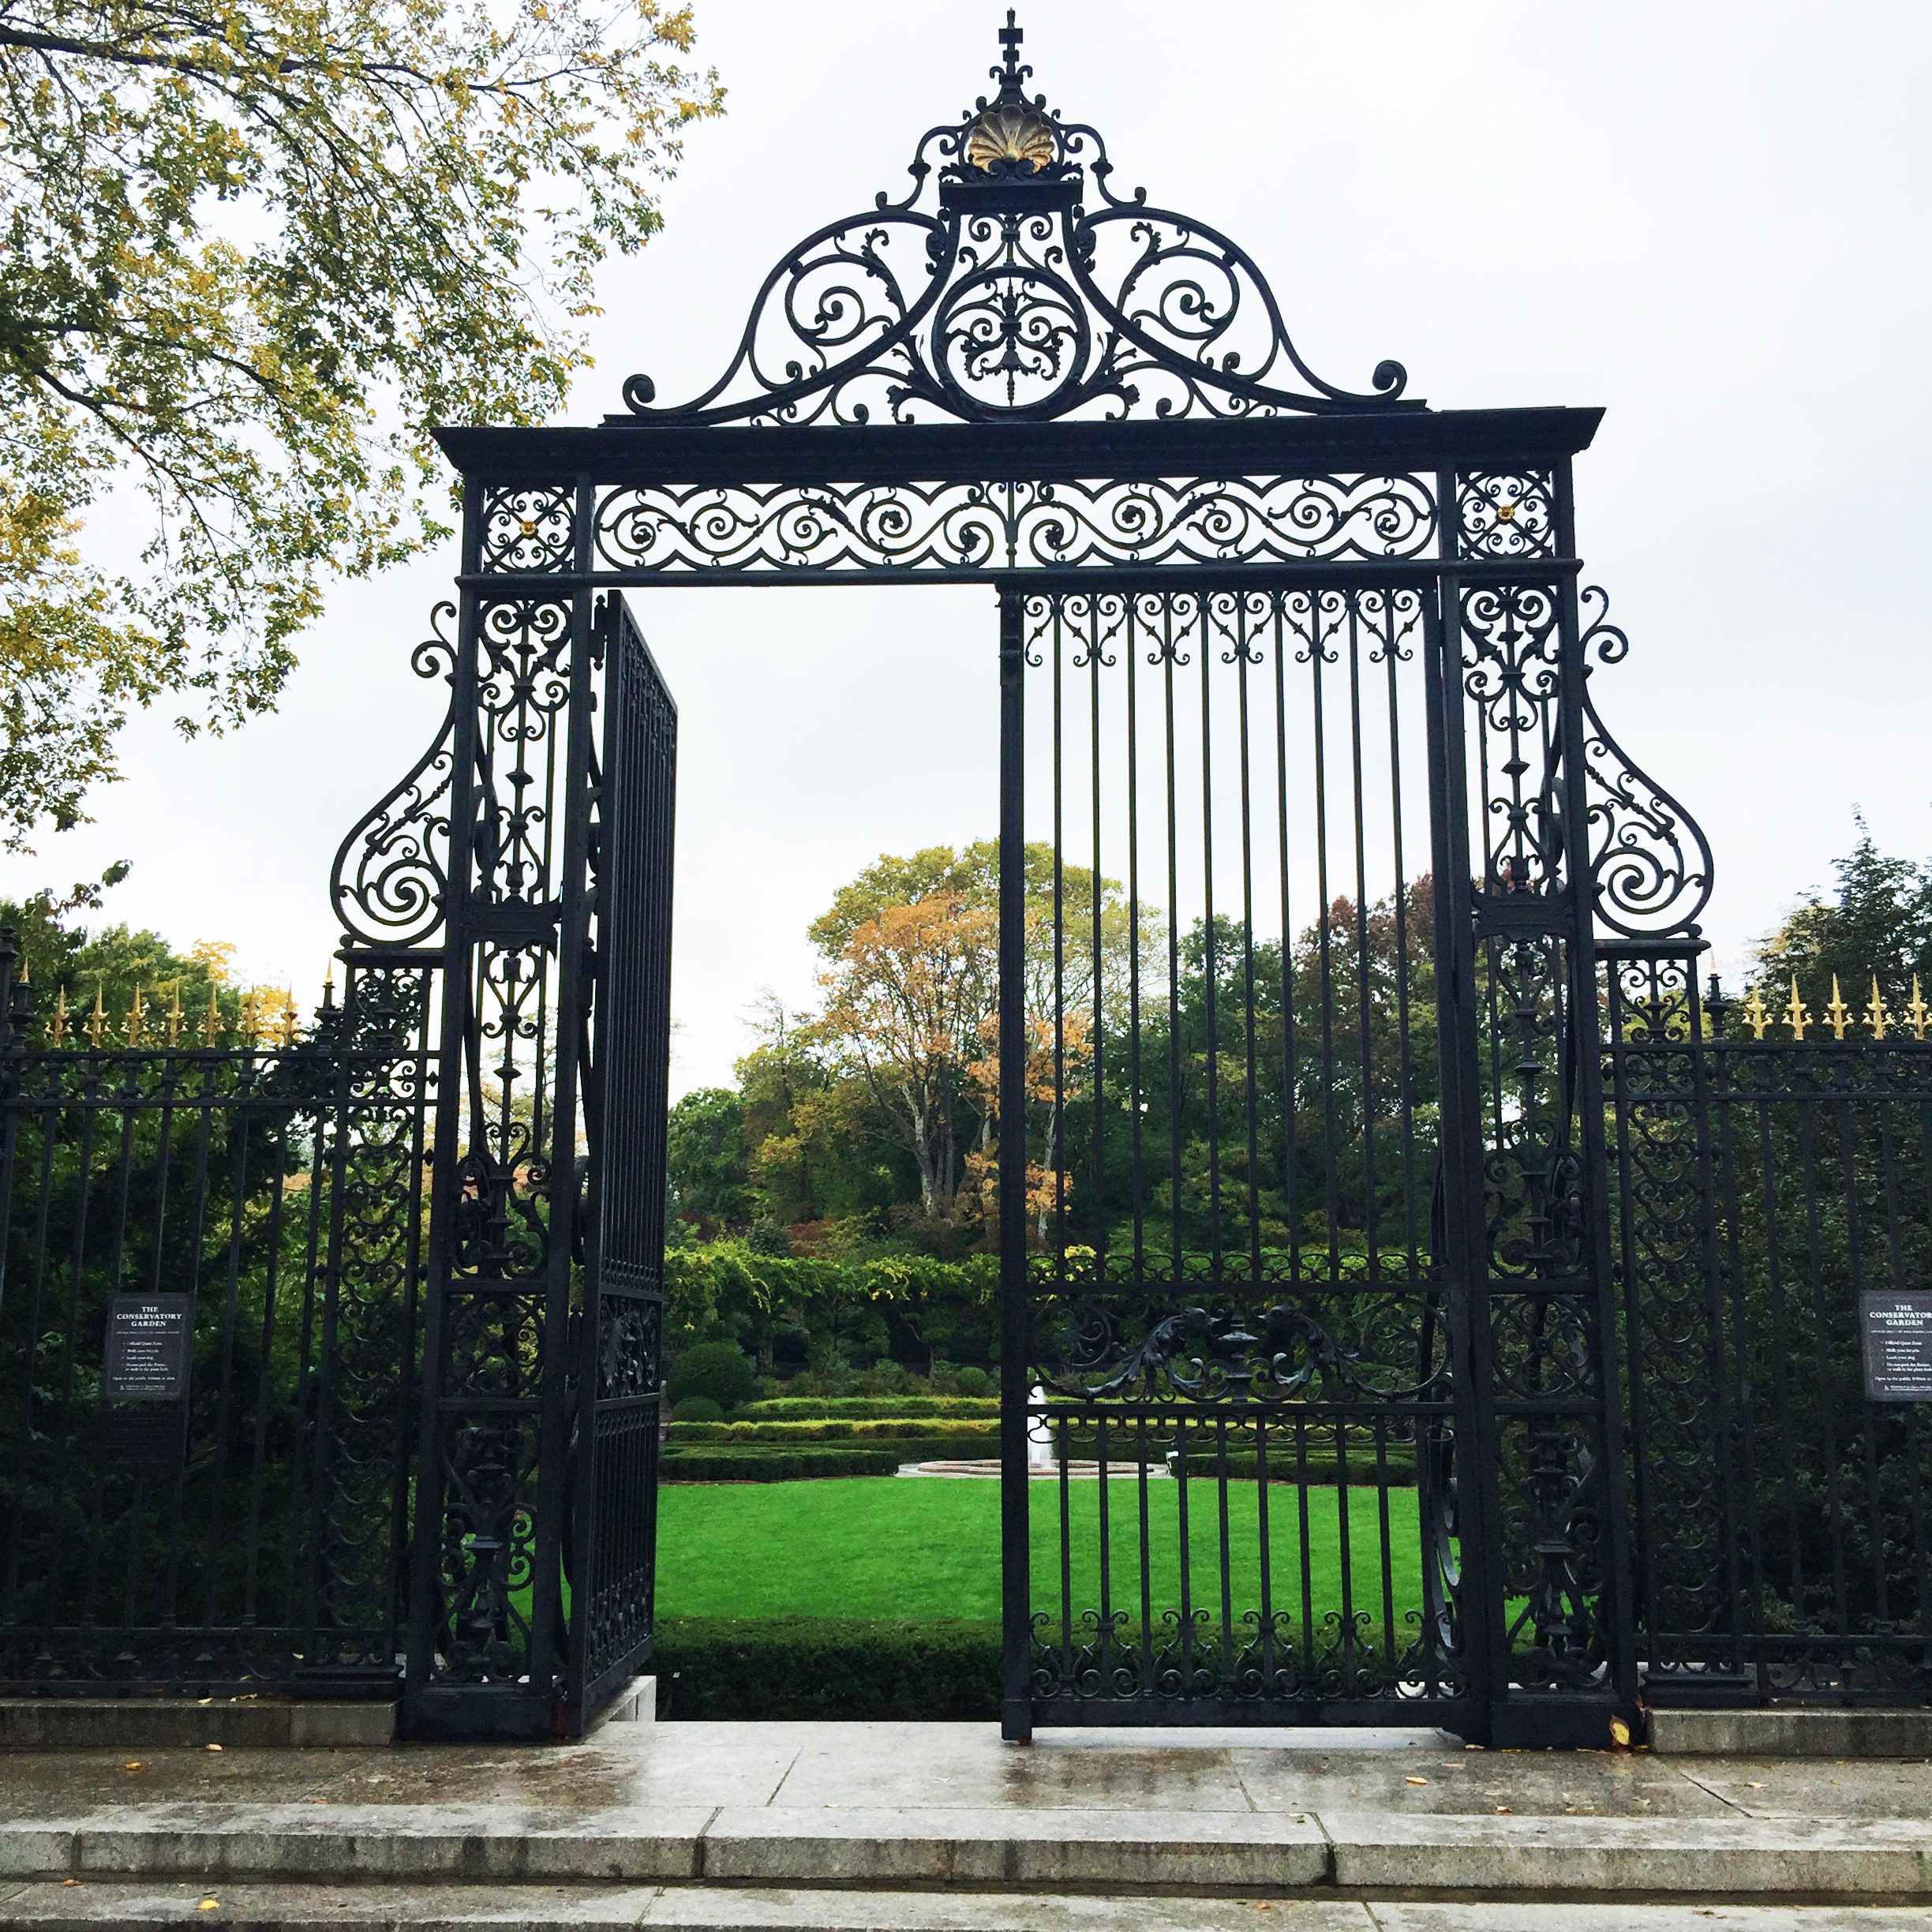 Central Park Nyc: Things To Do On The Upper East Side On A $30 Budget ⋆ Full